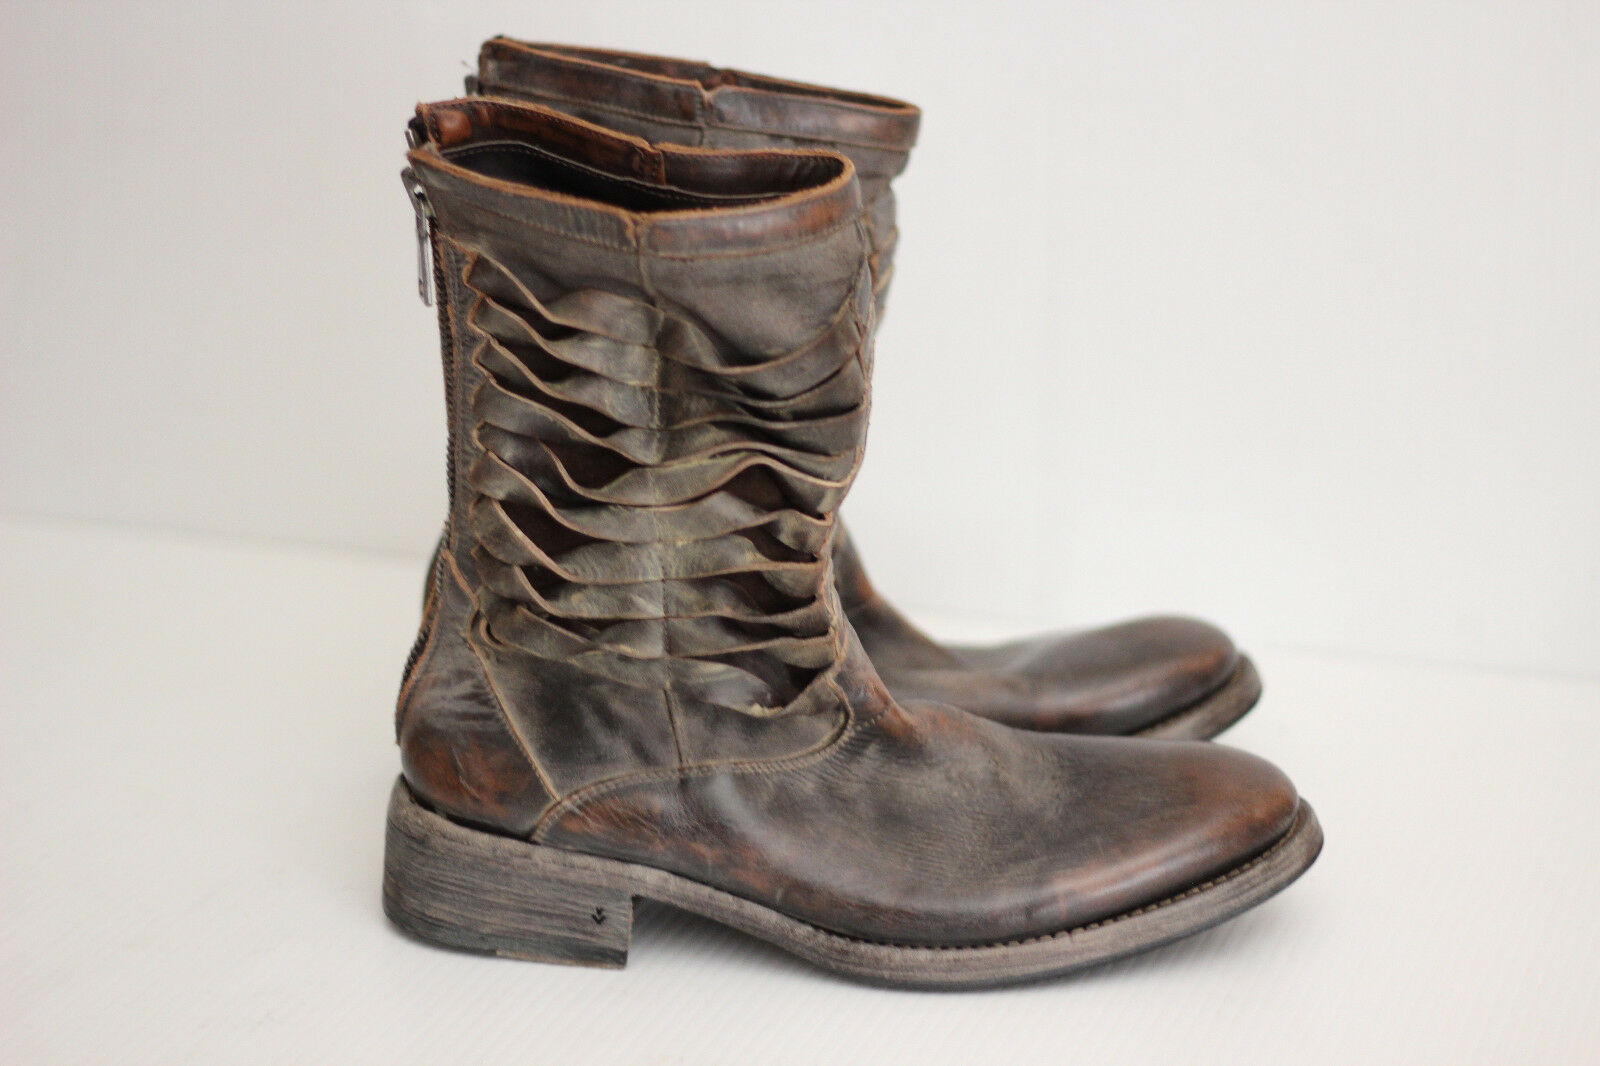 John Varvatos Collection 'Simmons Pavement Twisted' Zip Stivali - 8.5  1600